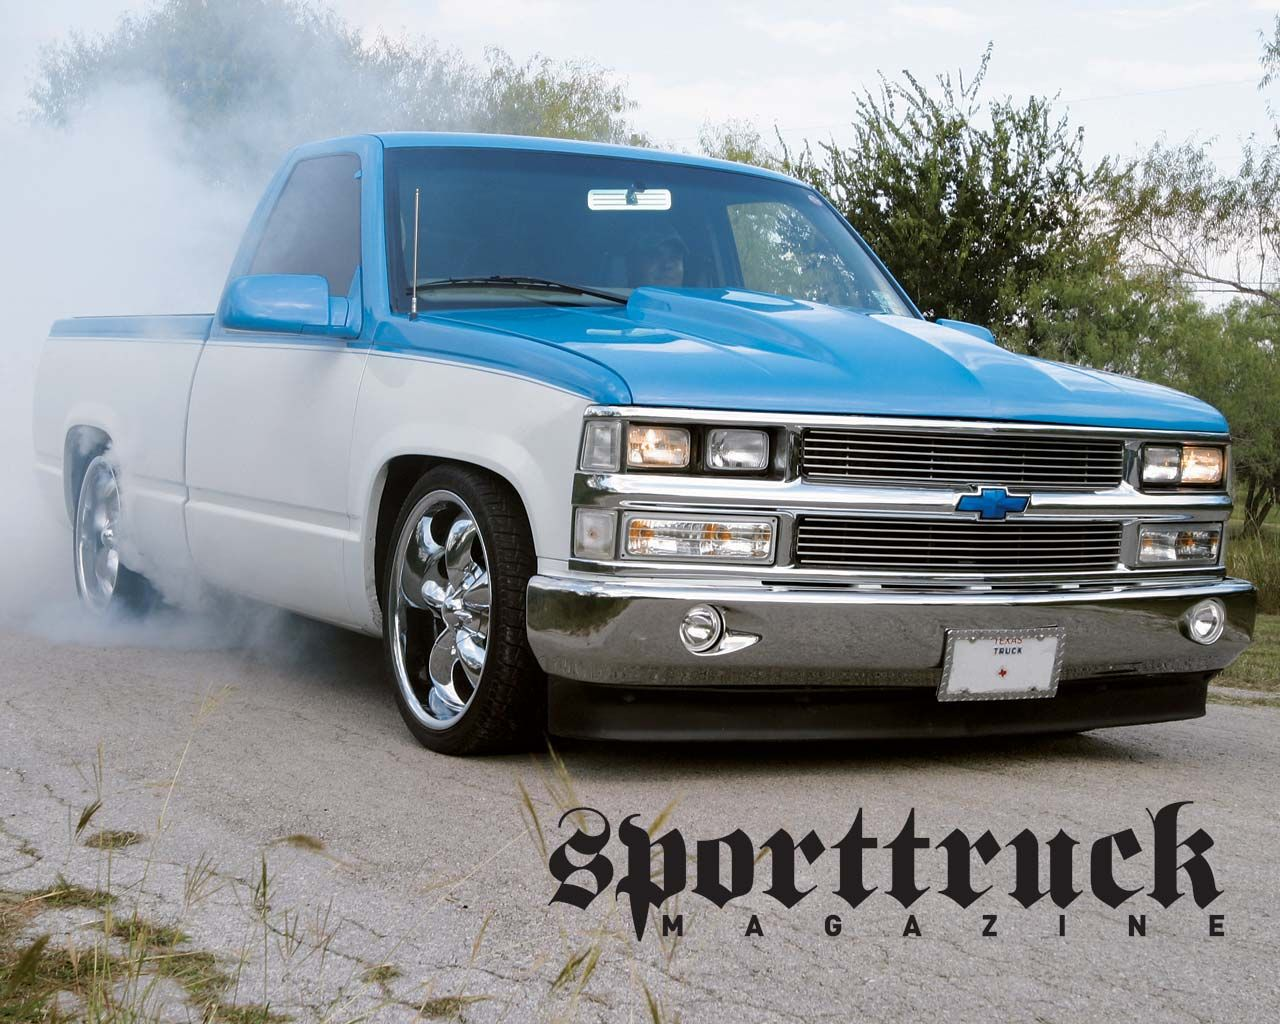 Chevy truck wallpapers sport truck wallpapers